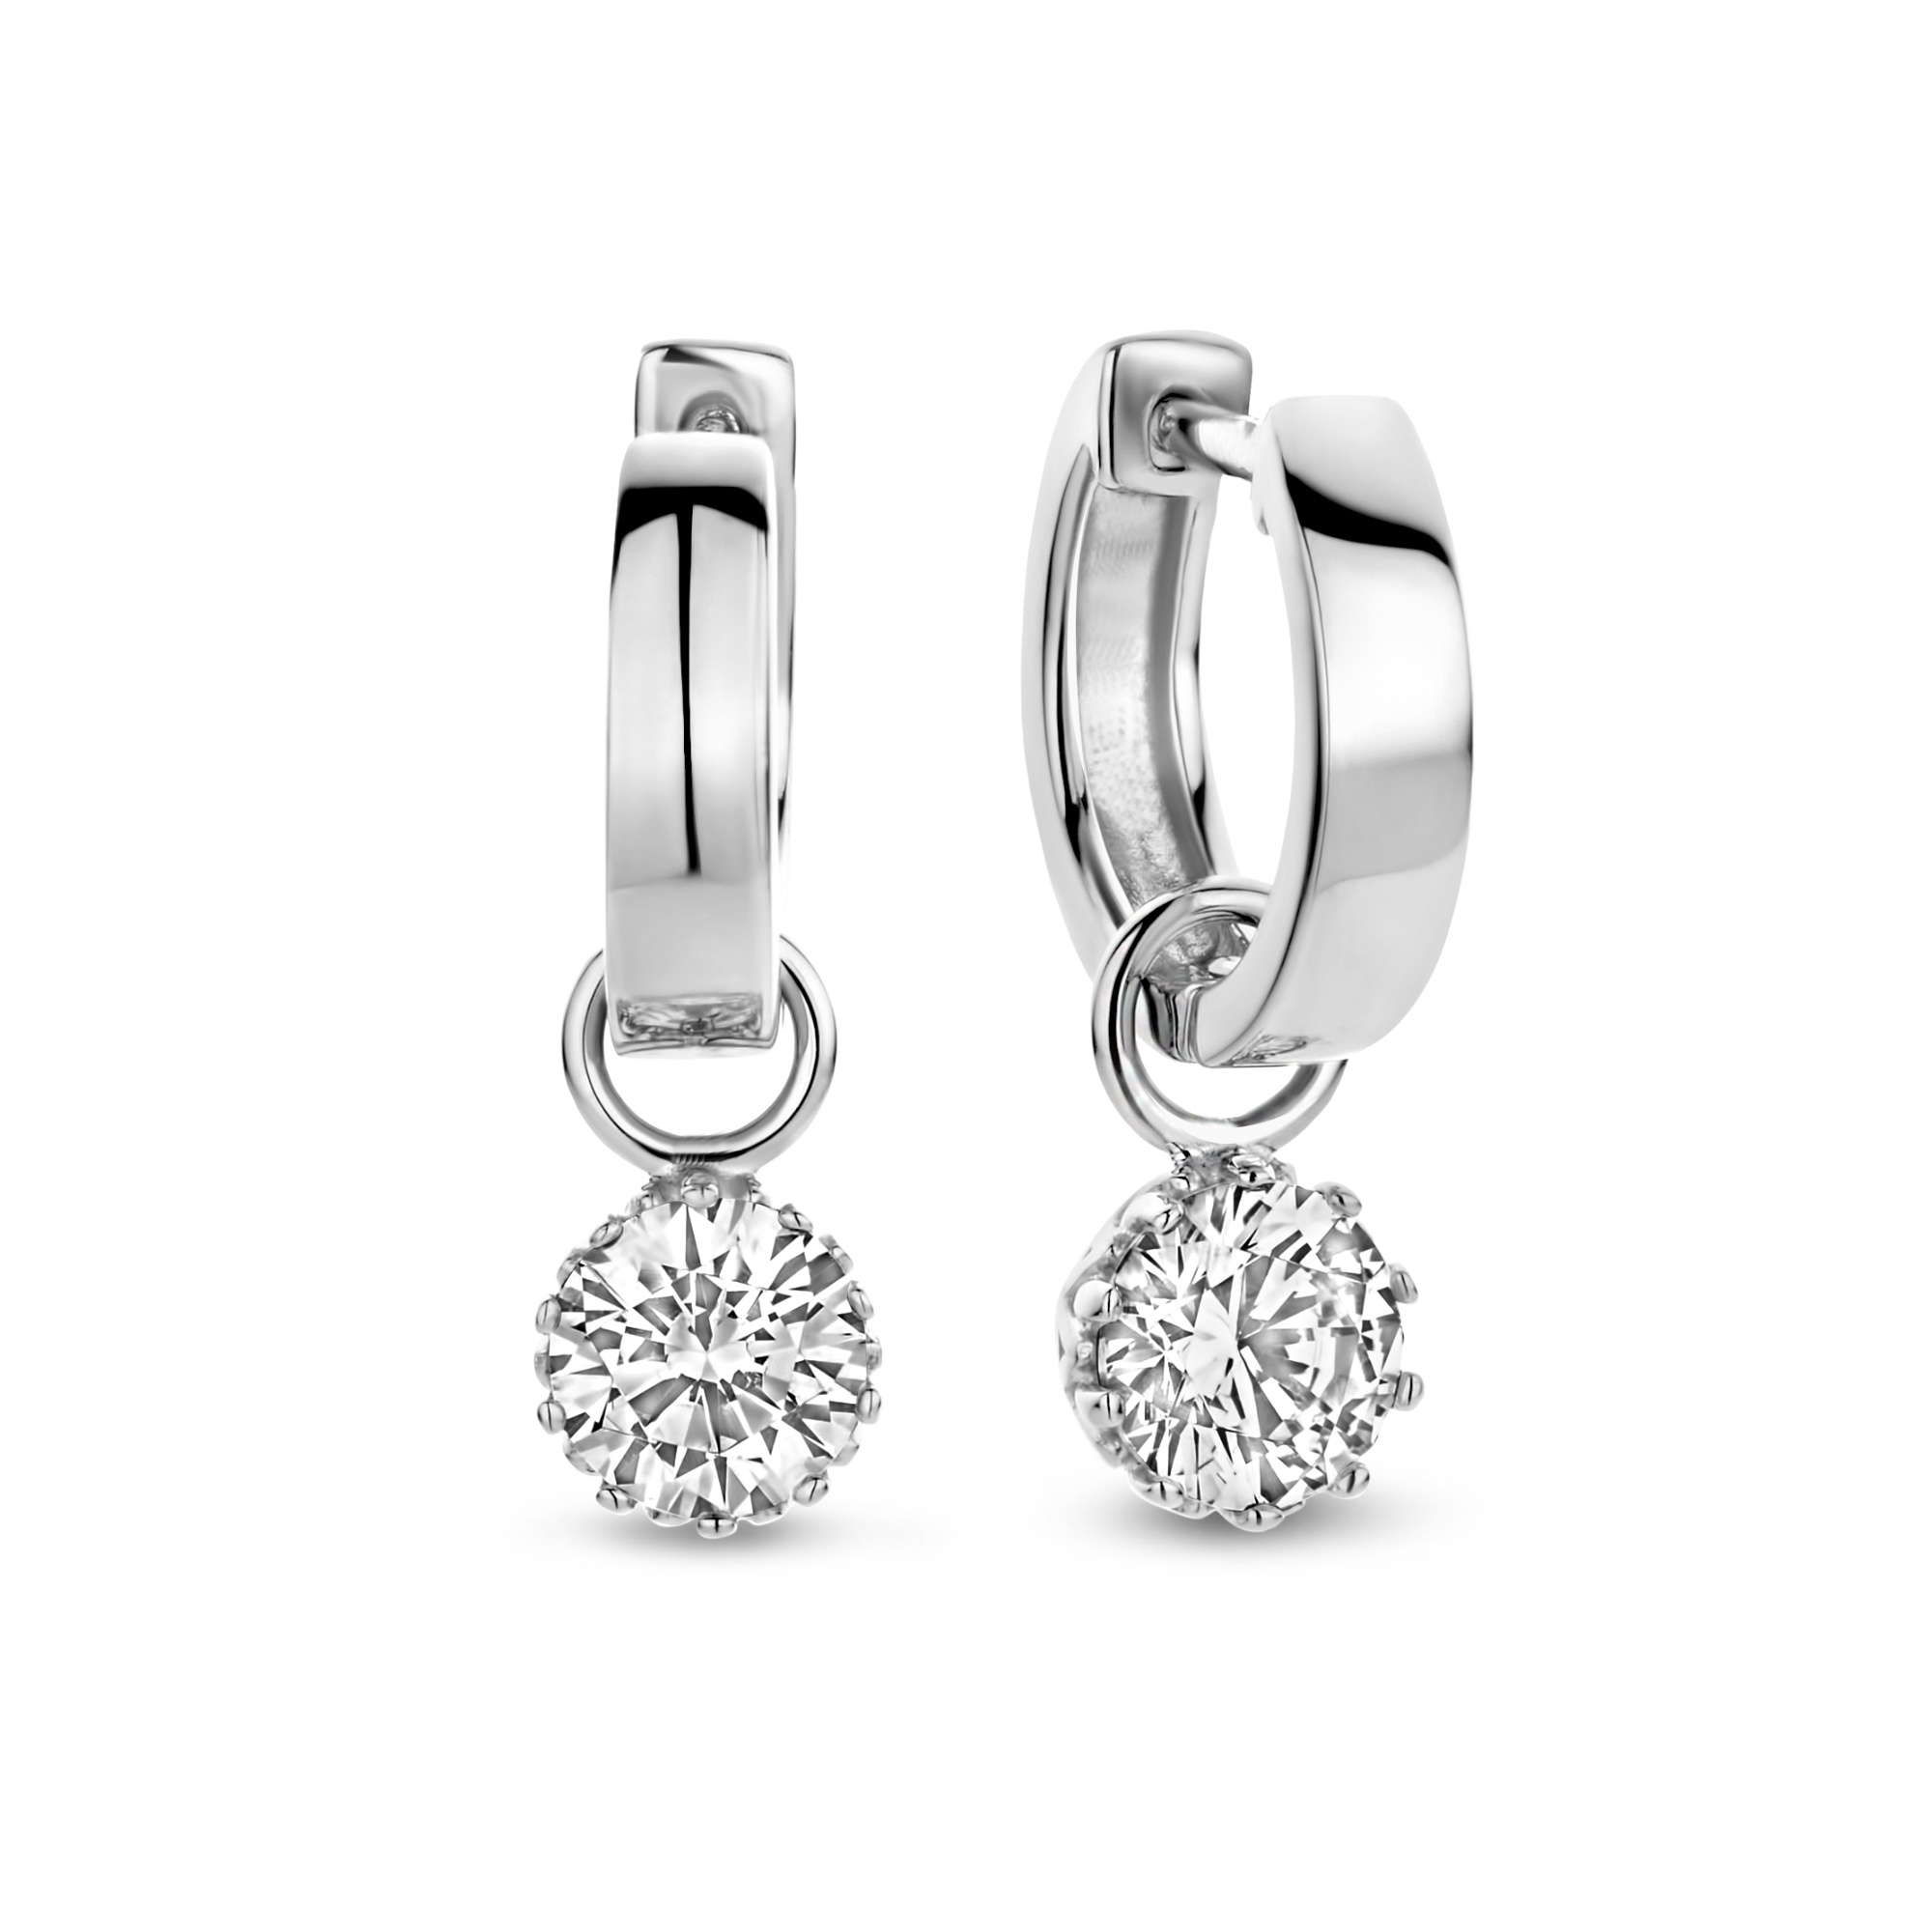 Parte di Me Cento Luci Rosia 925 sterling silver hoop earrings